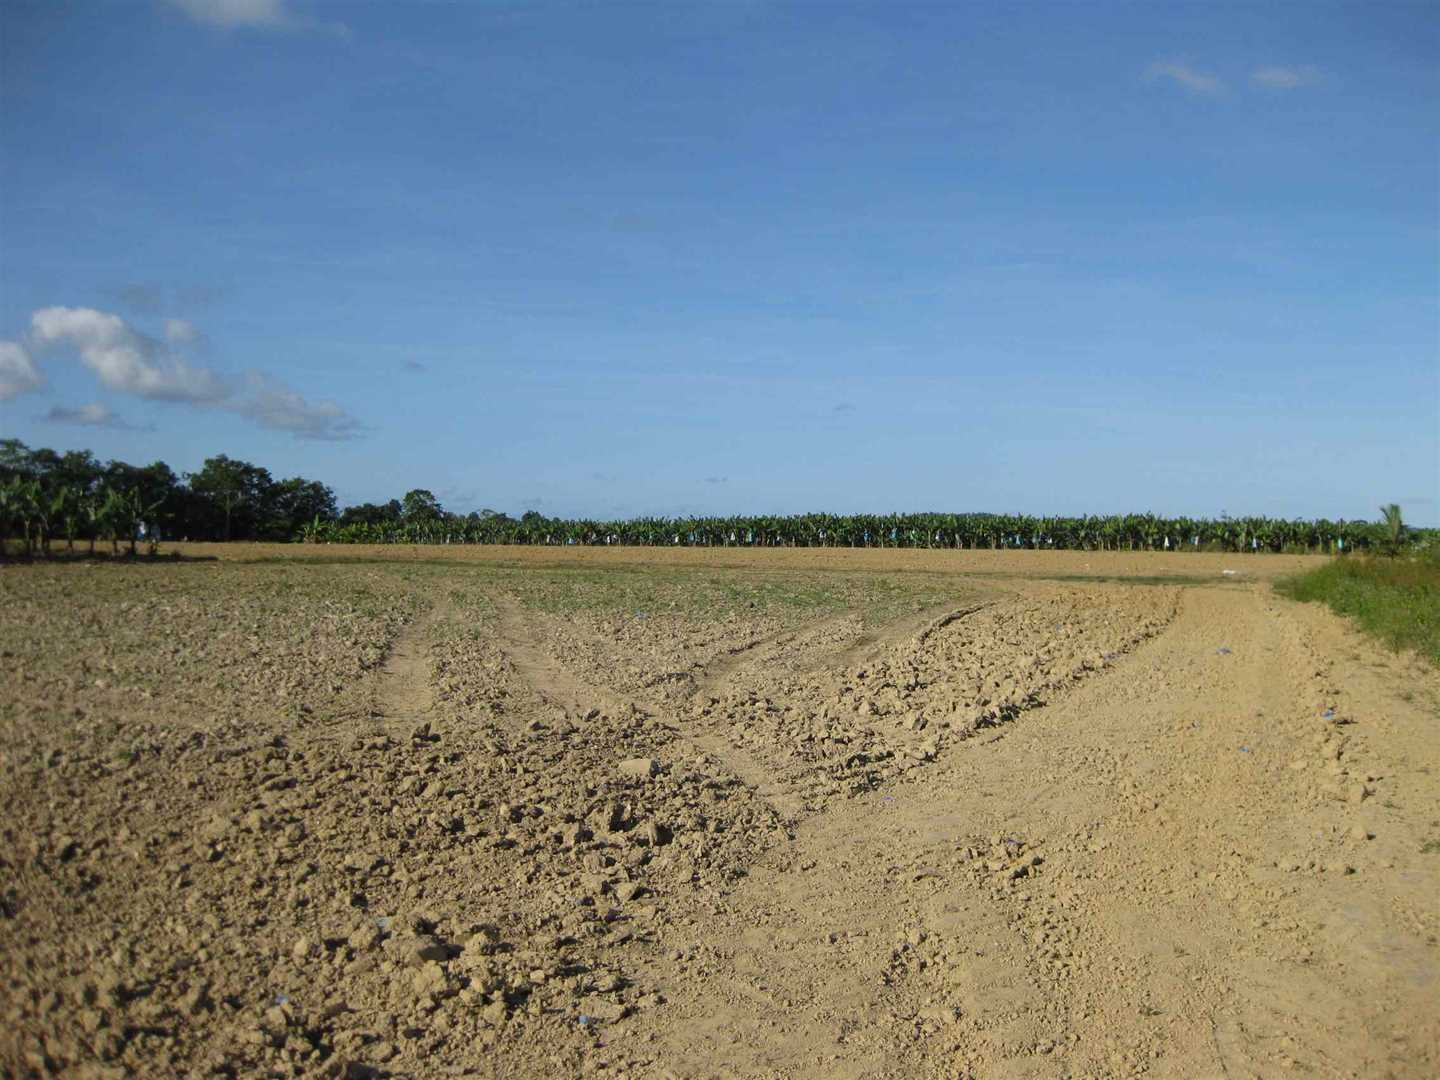 View of part of property showing some fallow land and distant bananas